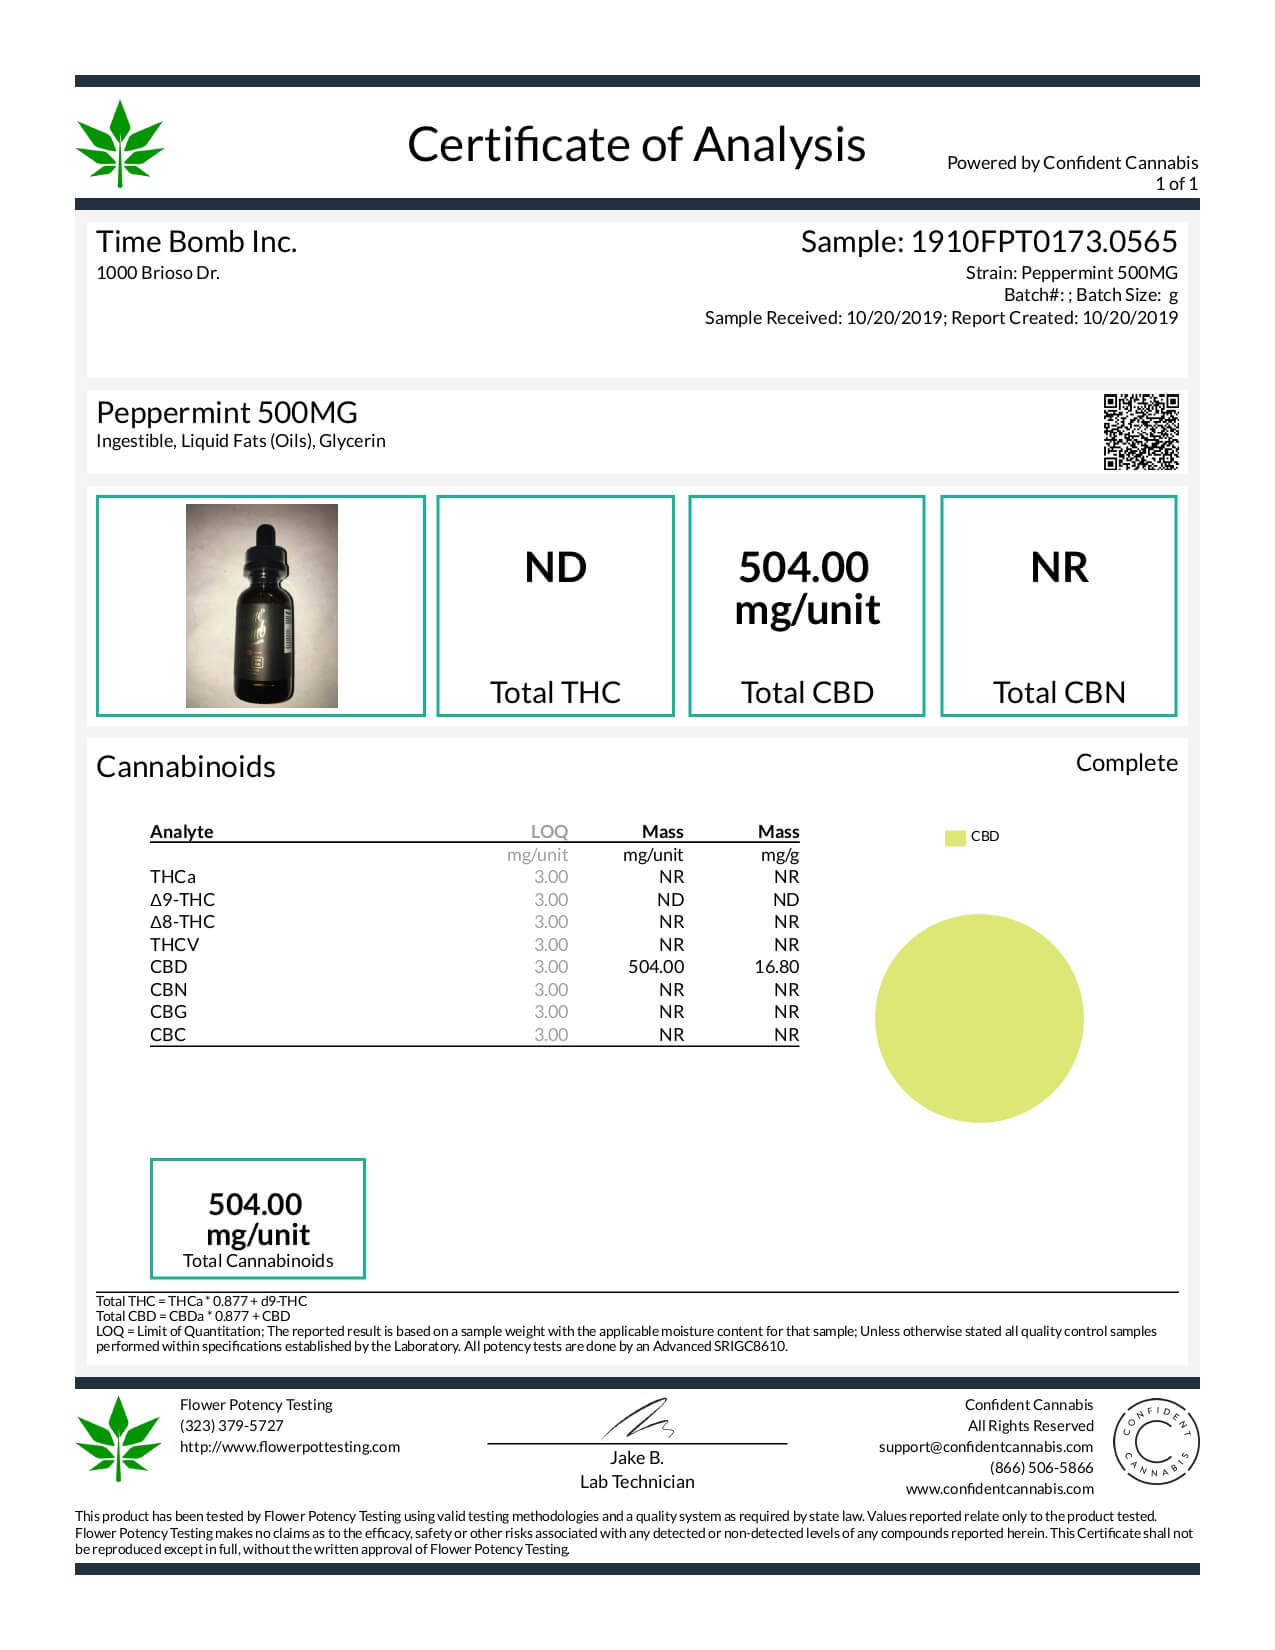 Time Bomb Extracts CBD Tincture Peppermint 500mg Lab Report